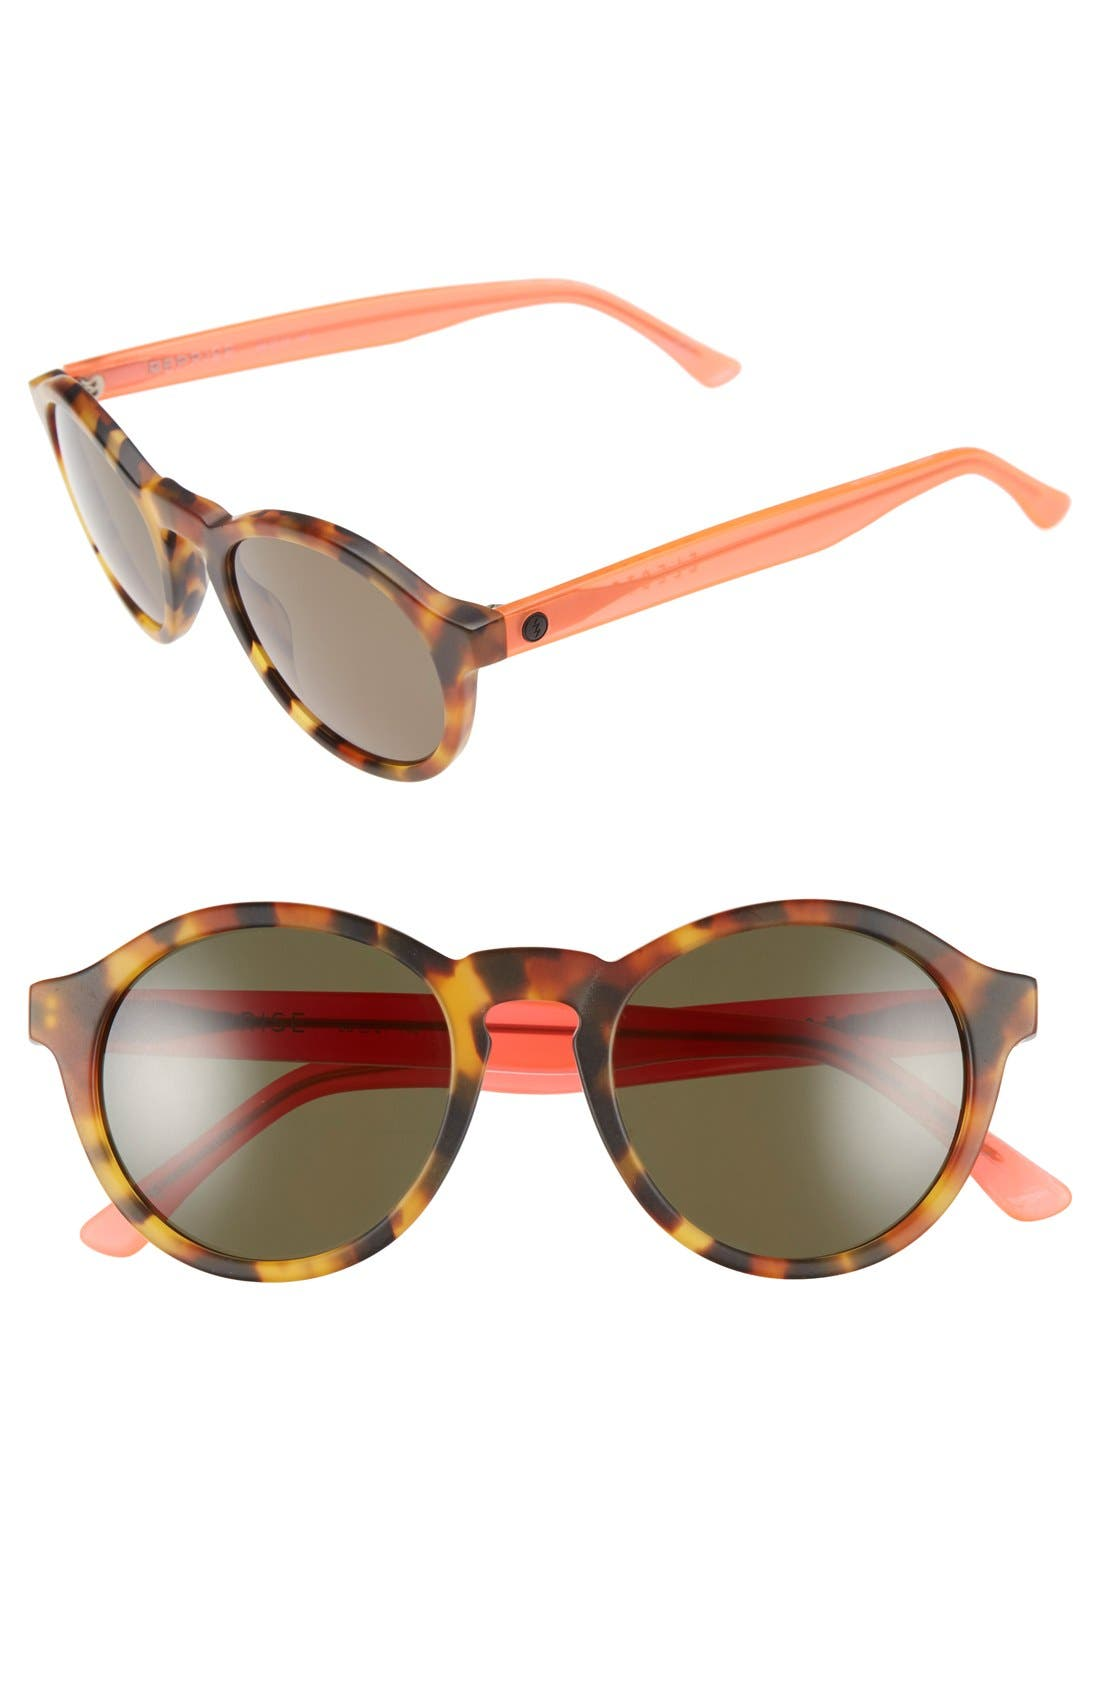 ELECTRIC Reprise 50mm Round Sunglasses